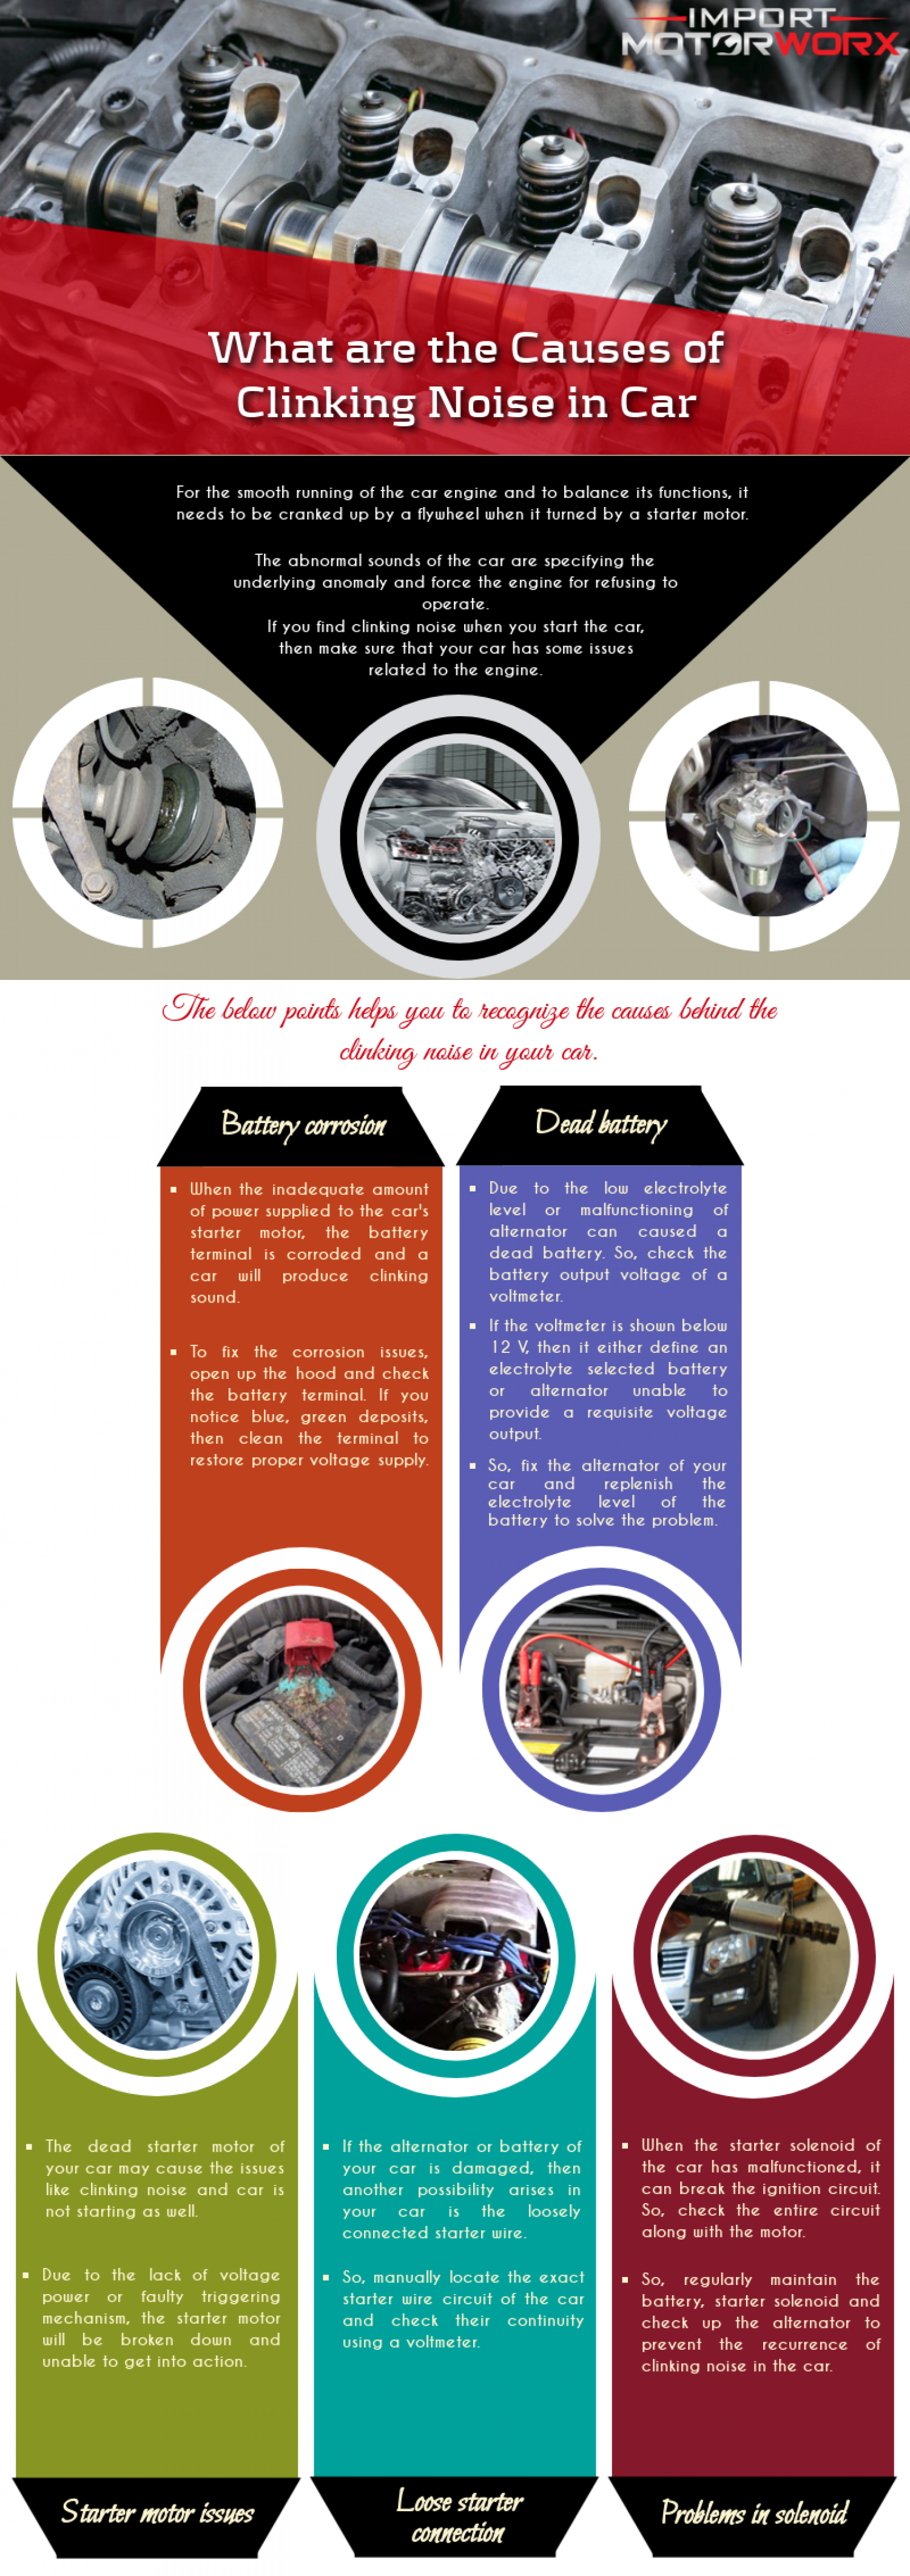 What are the Causes of Clinking Noise in Car Infographic